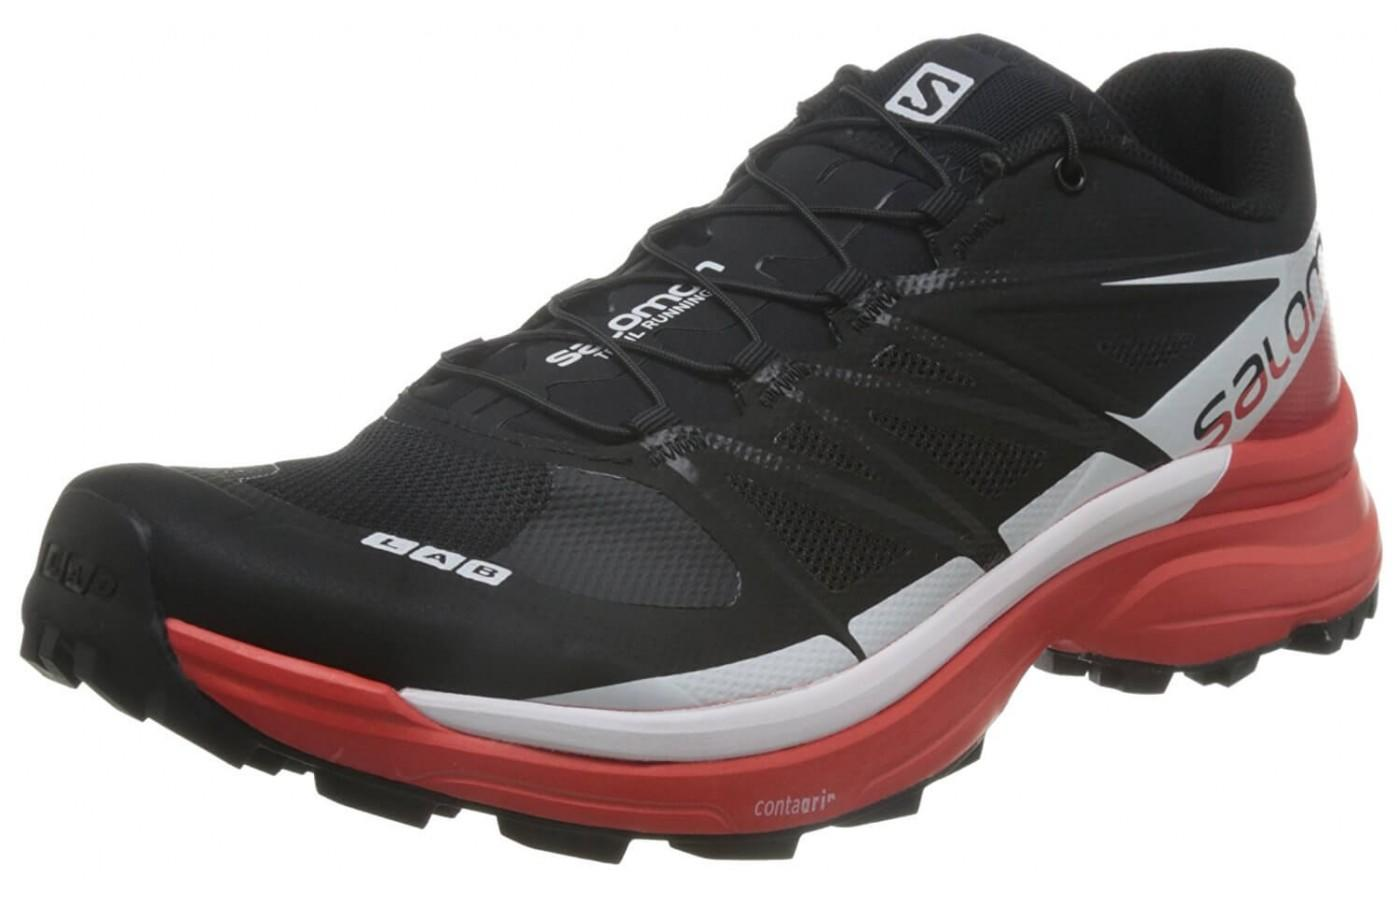 The Wings 8 is a well equipped trail racing shoe